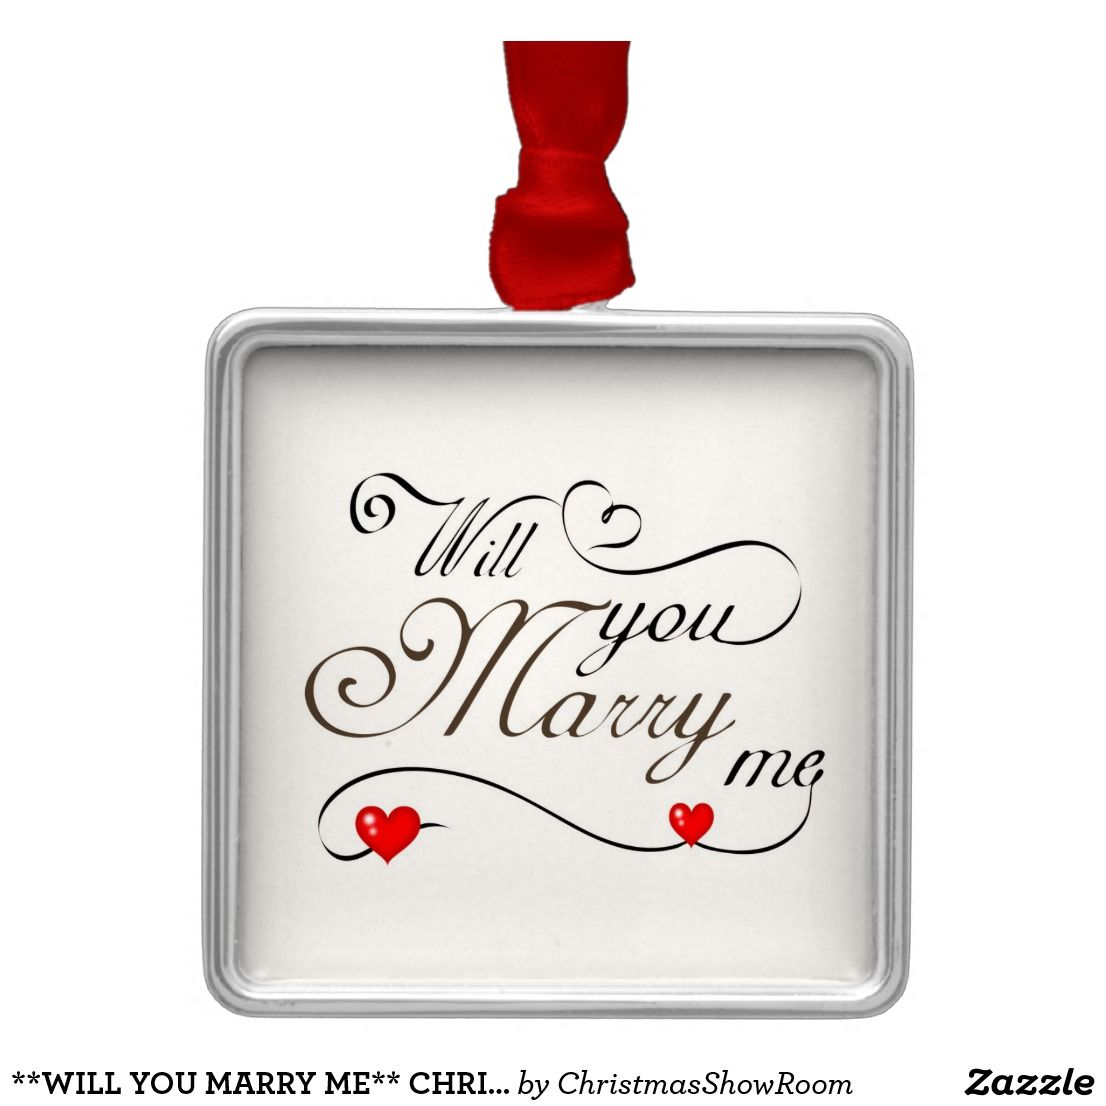 WILL YOU MARRY ME** CHRISMAS PROPOSAL ORNAMENT